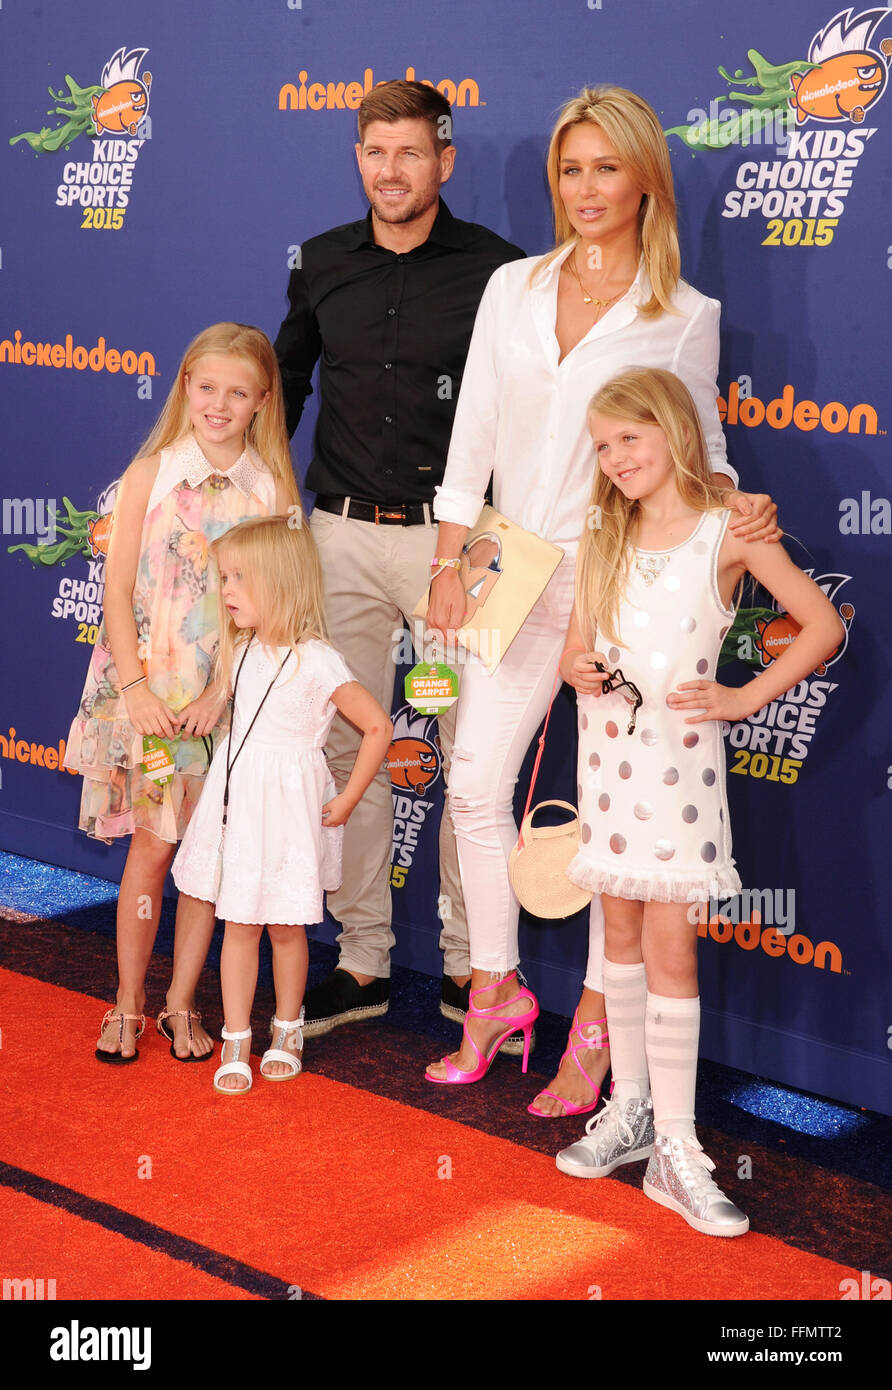 Soccer player Steven Gerrard, wife Alex Gerrard and daughters Lilly-Ella Gerrard, Lexie Gerrard, Lourdes Gerrard Stock Photo